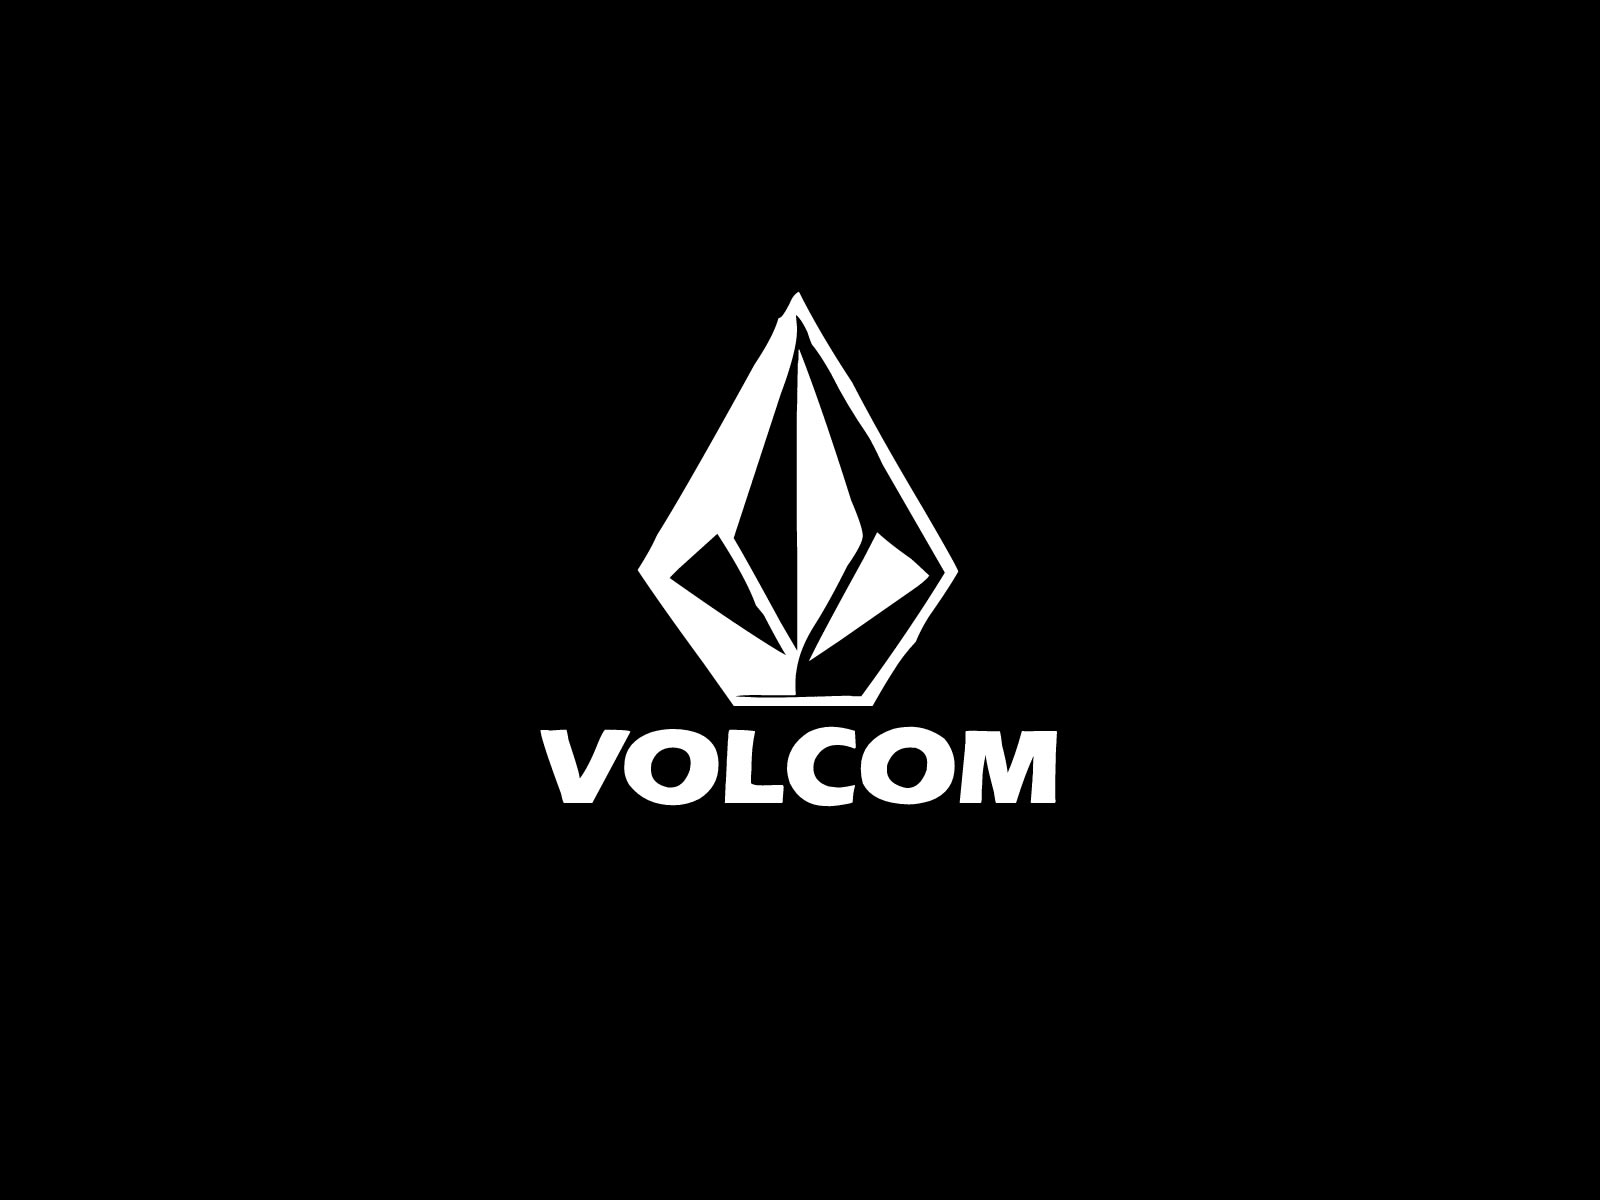 Volcom Logo Wallpaper